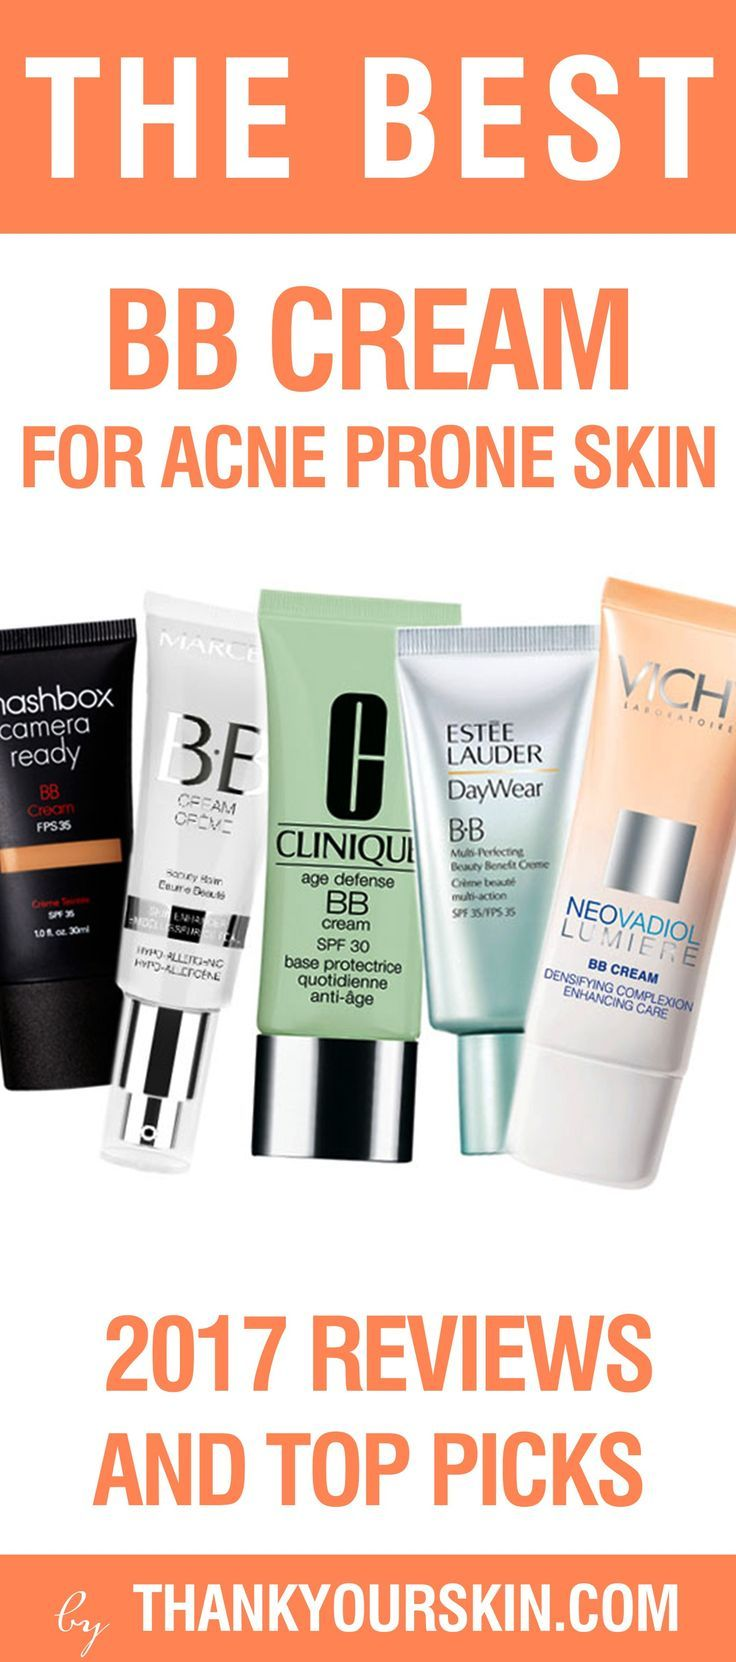 Best BB Cream for acne prone skin